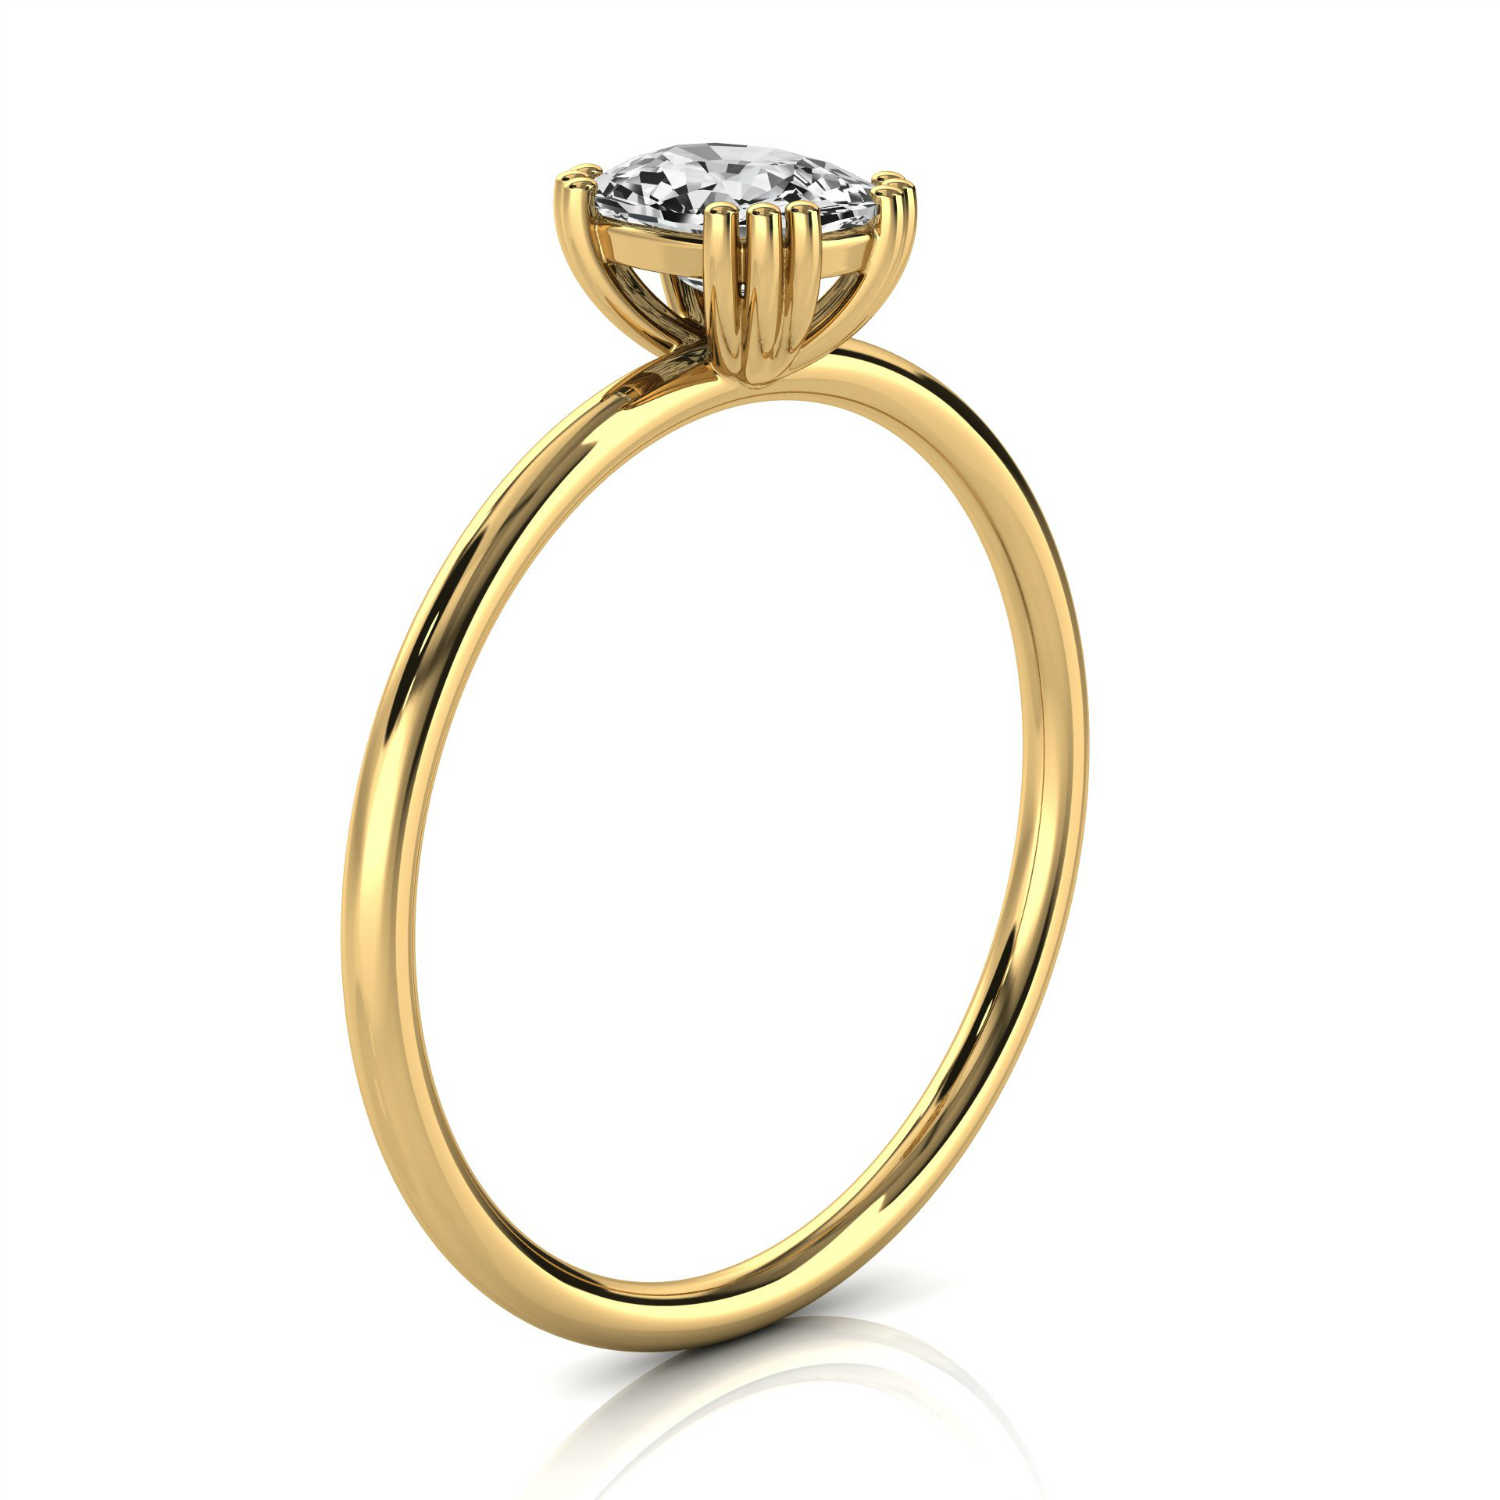 14K Yellow Gold Sari Solitaire Petite Earthy Organic Design Diamond Ring